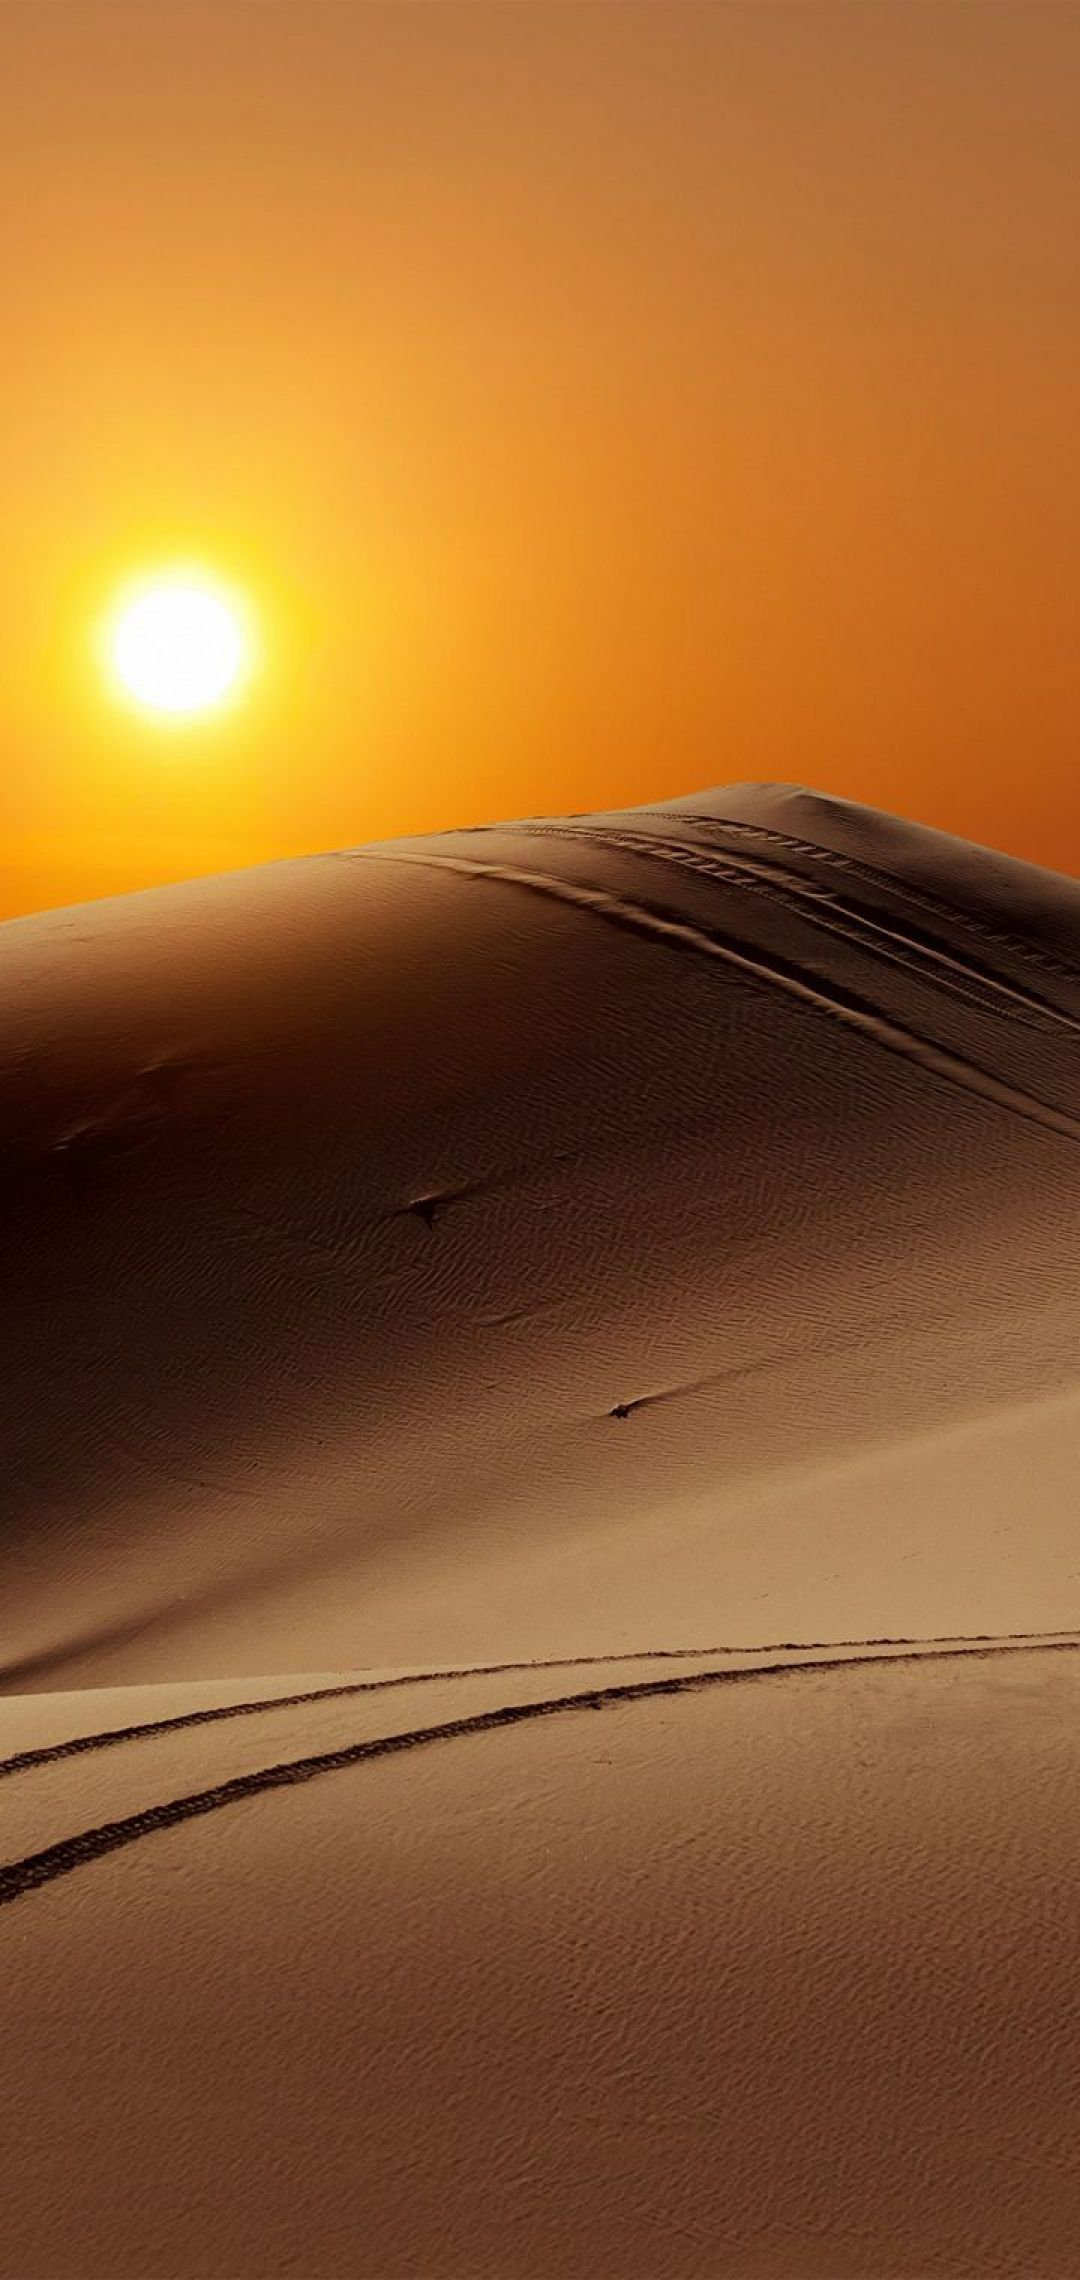 ✅[40+] Desert Camel - Android, iPhone, Desktop HD Backgrounds / Wallpapers (1080p, 4k) (1080x2280) (2020)